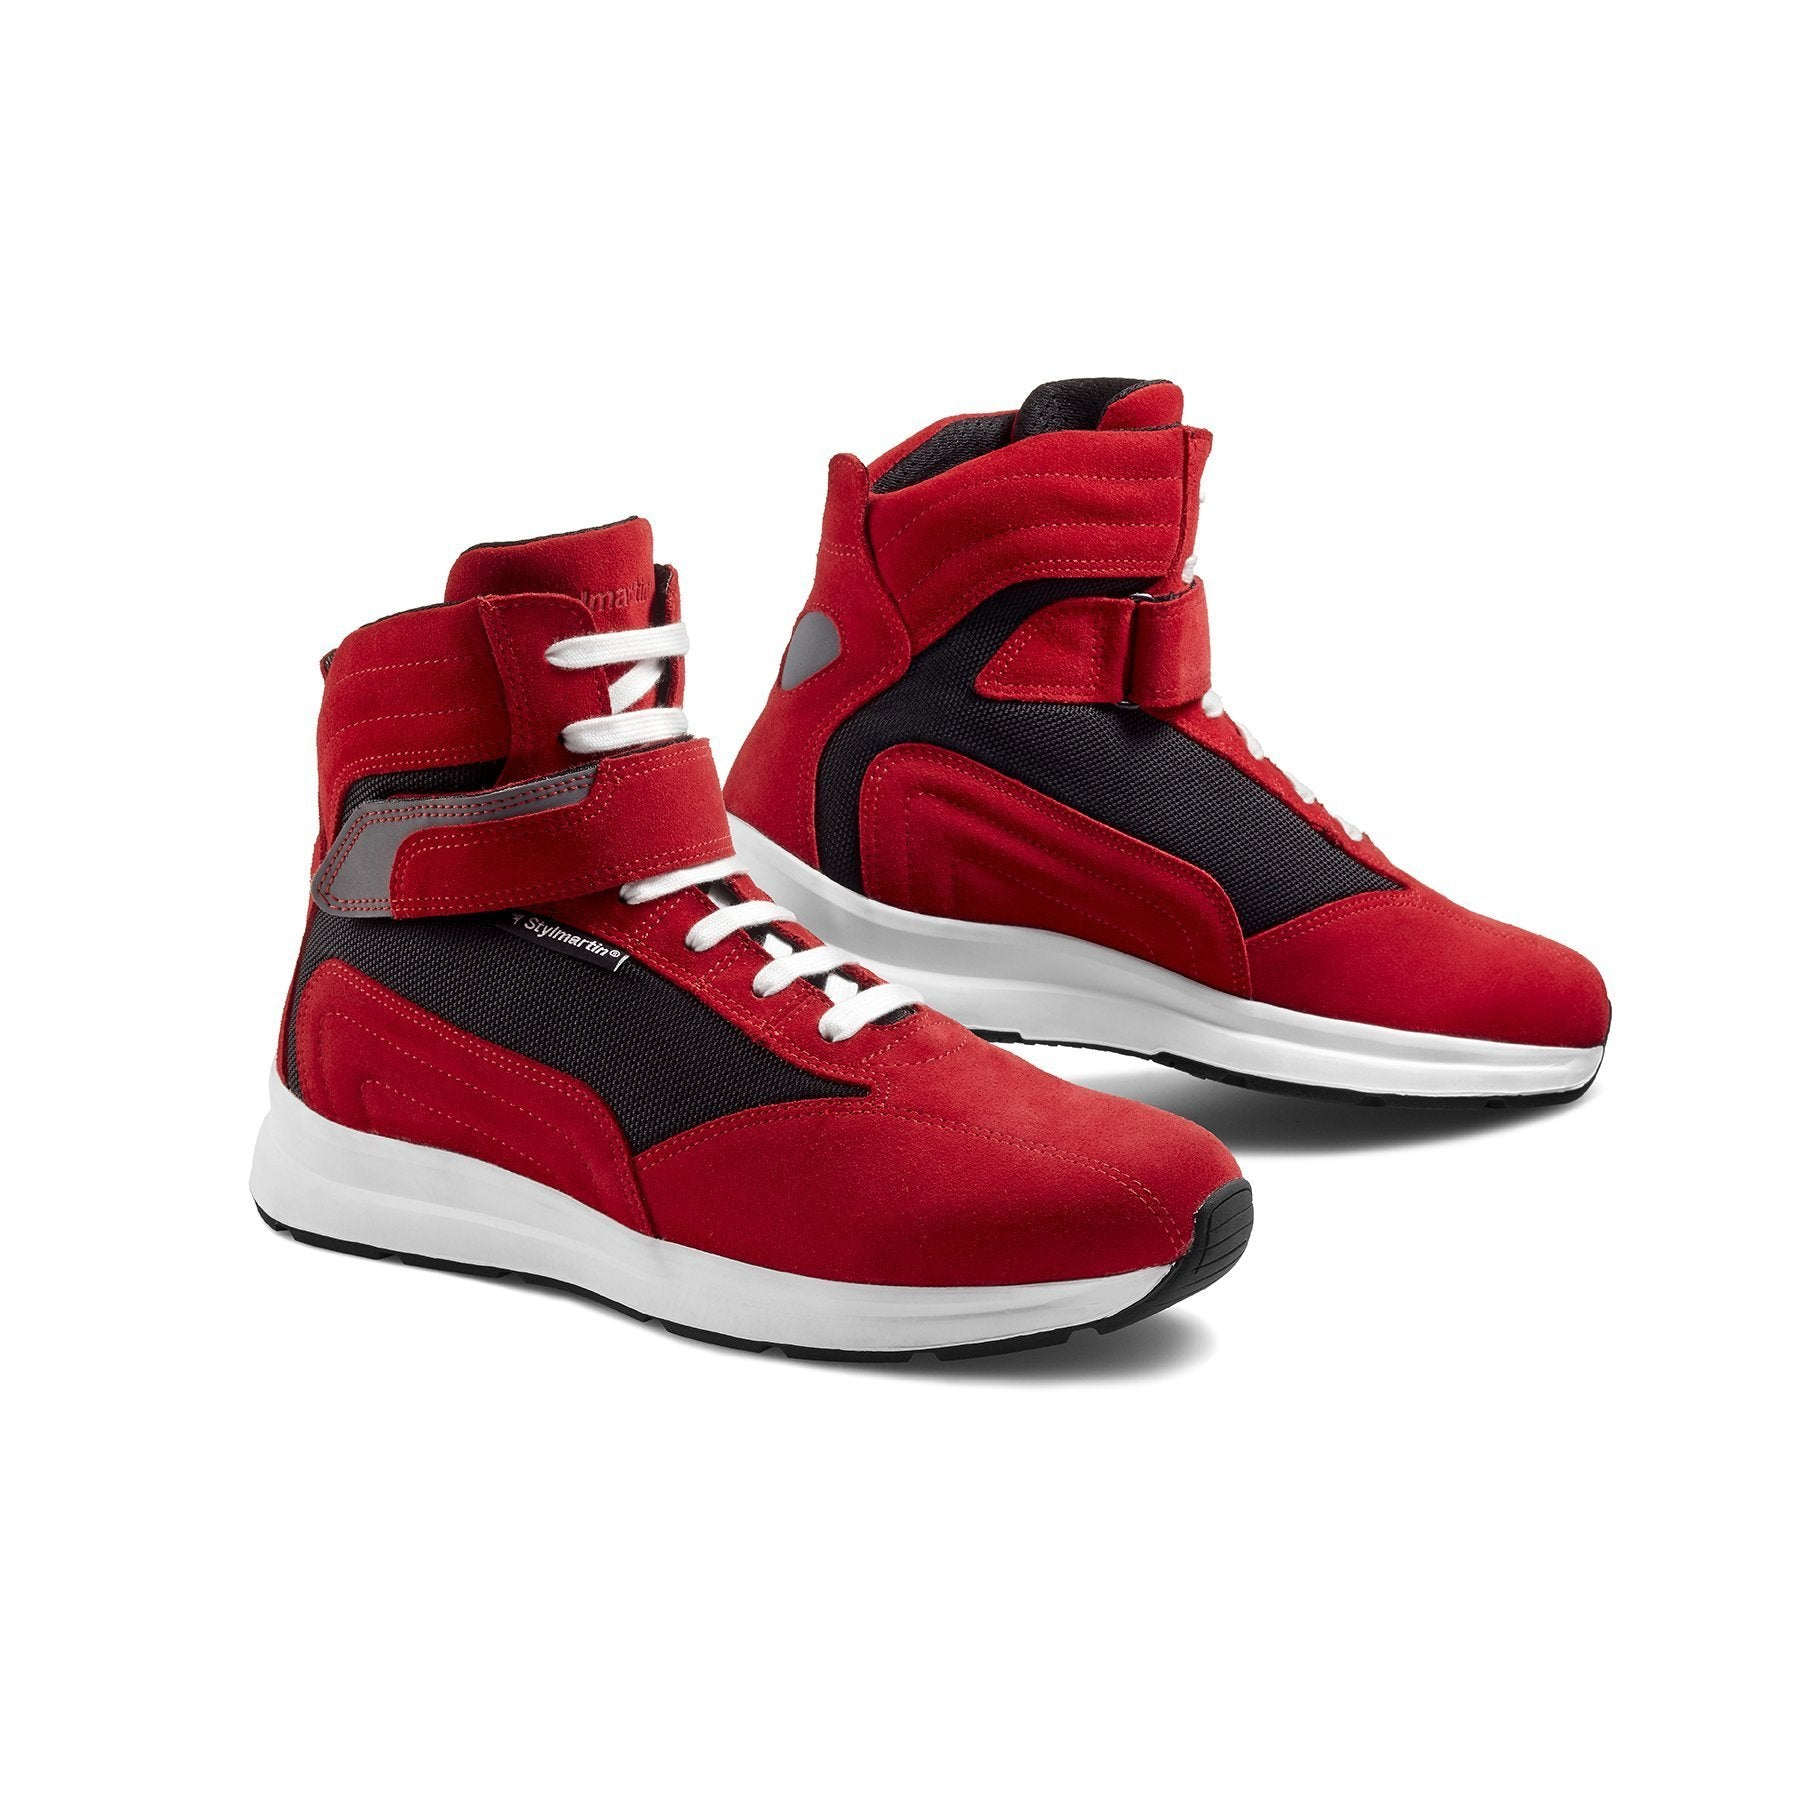 Stylmartin - Stylmartin Audax WP Sport U in Red - Boots - Salt Flats Clothing